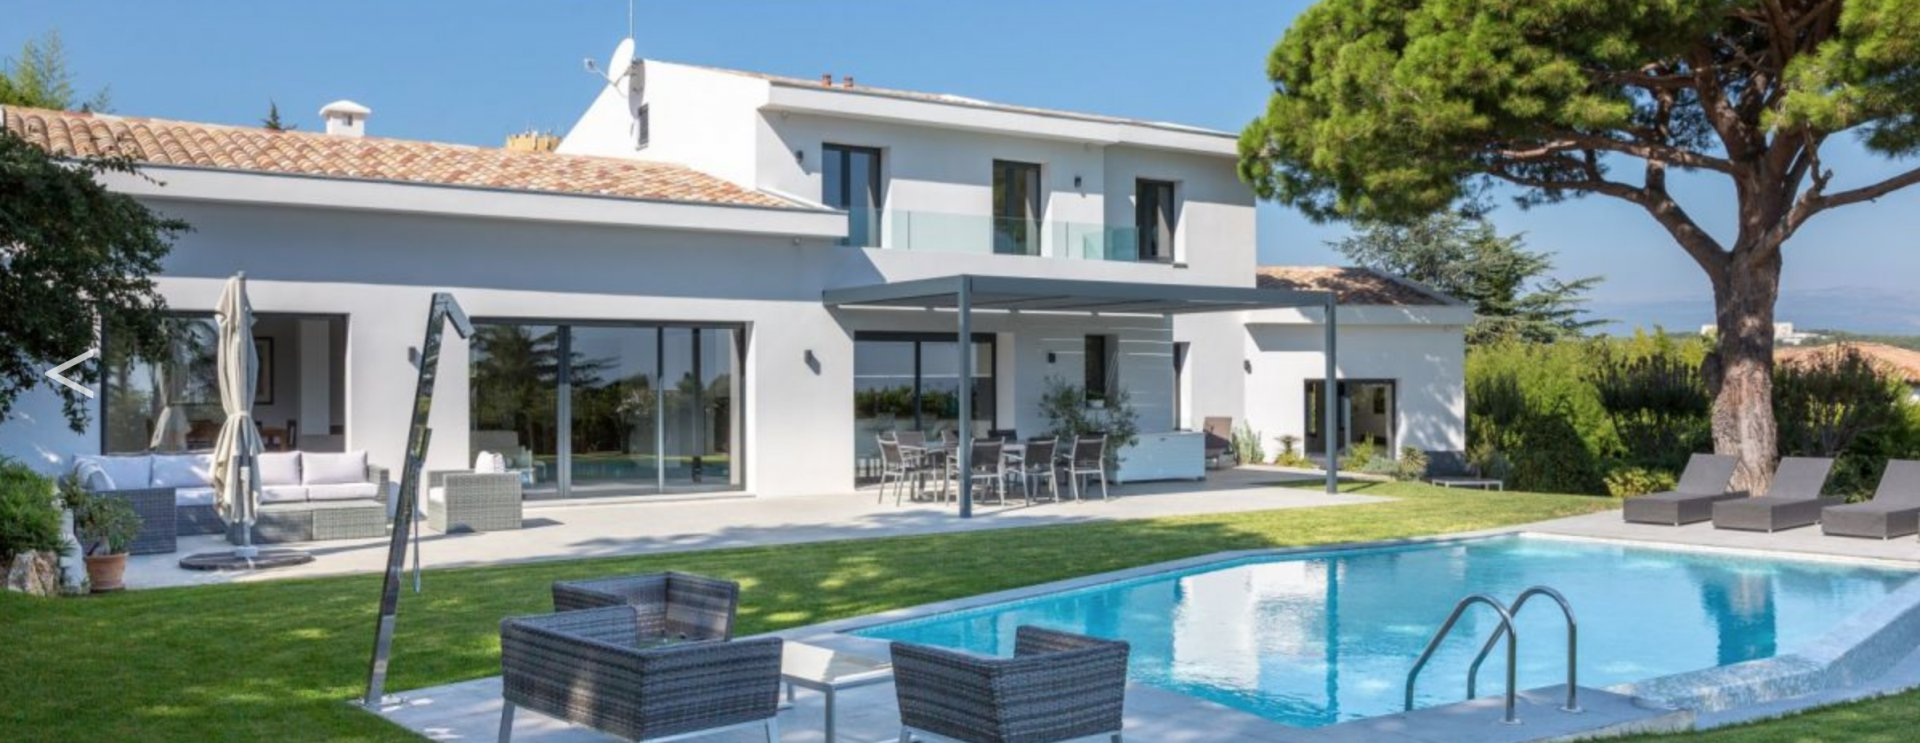 Super Cannes villa contemporaine 10 p / piscine